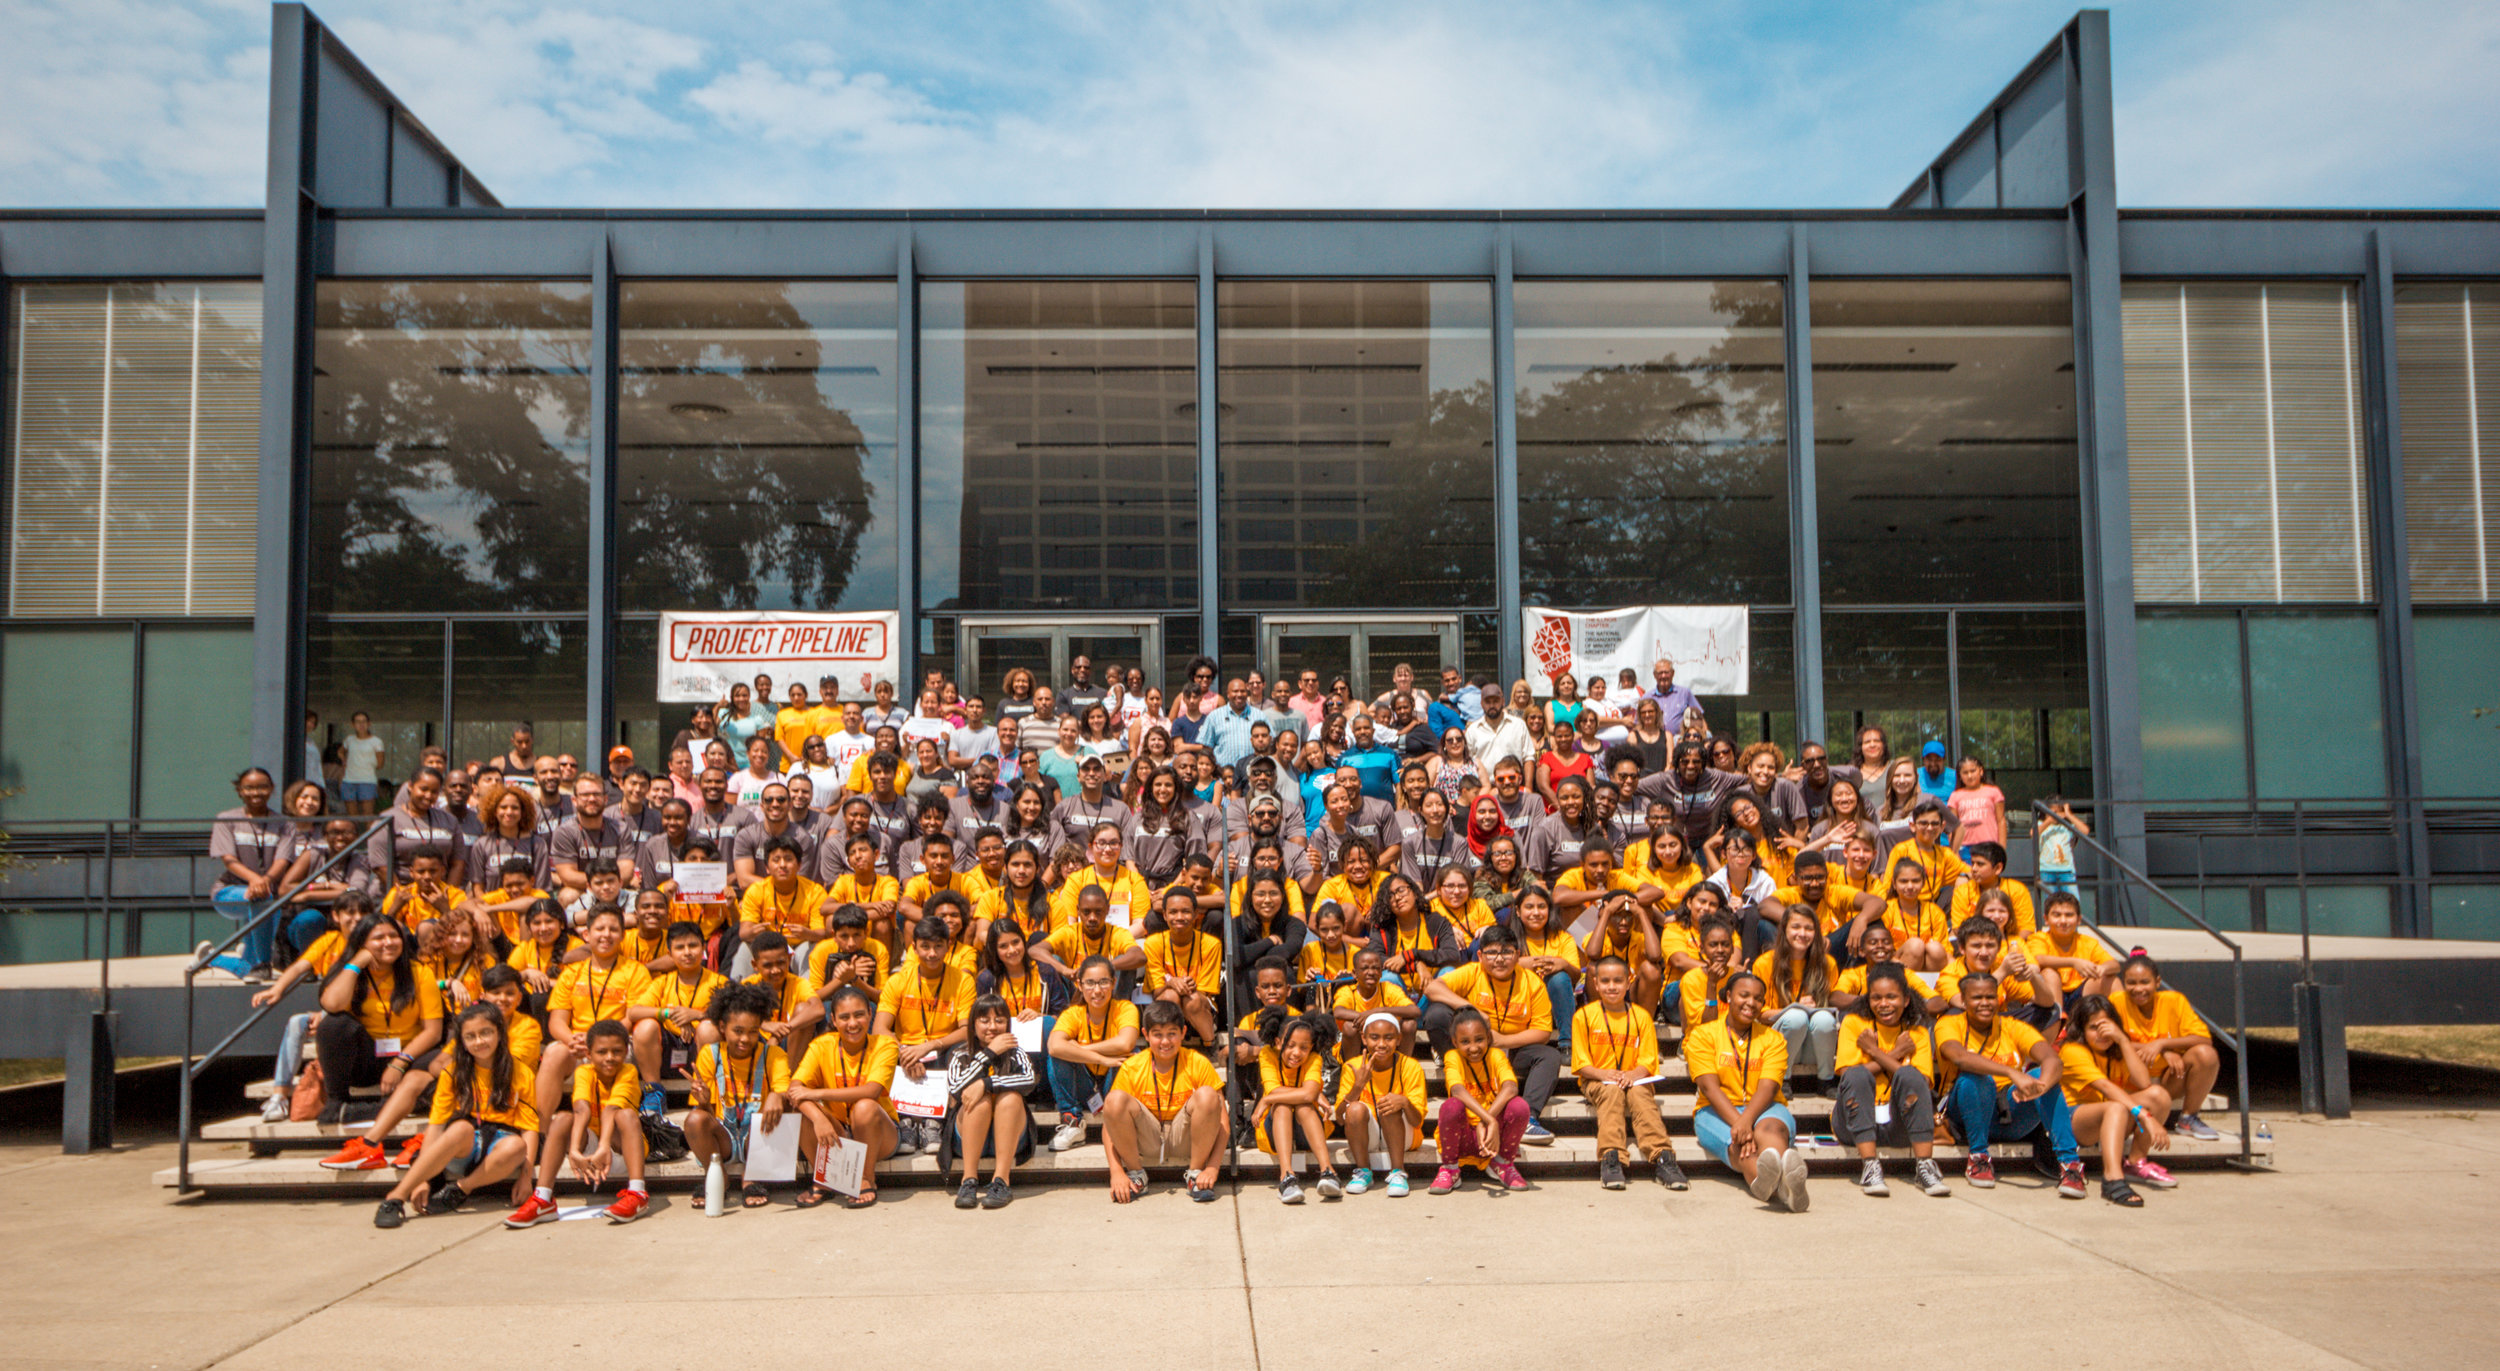 Project Pipeline Summer Camp 2018